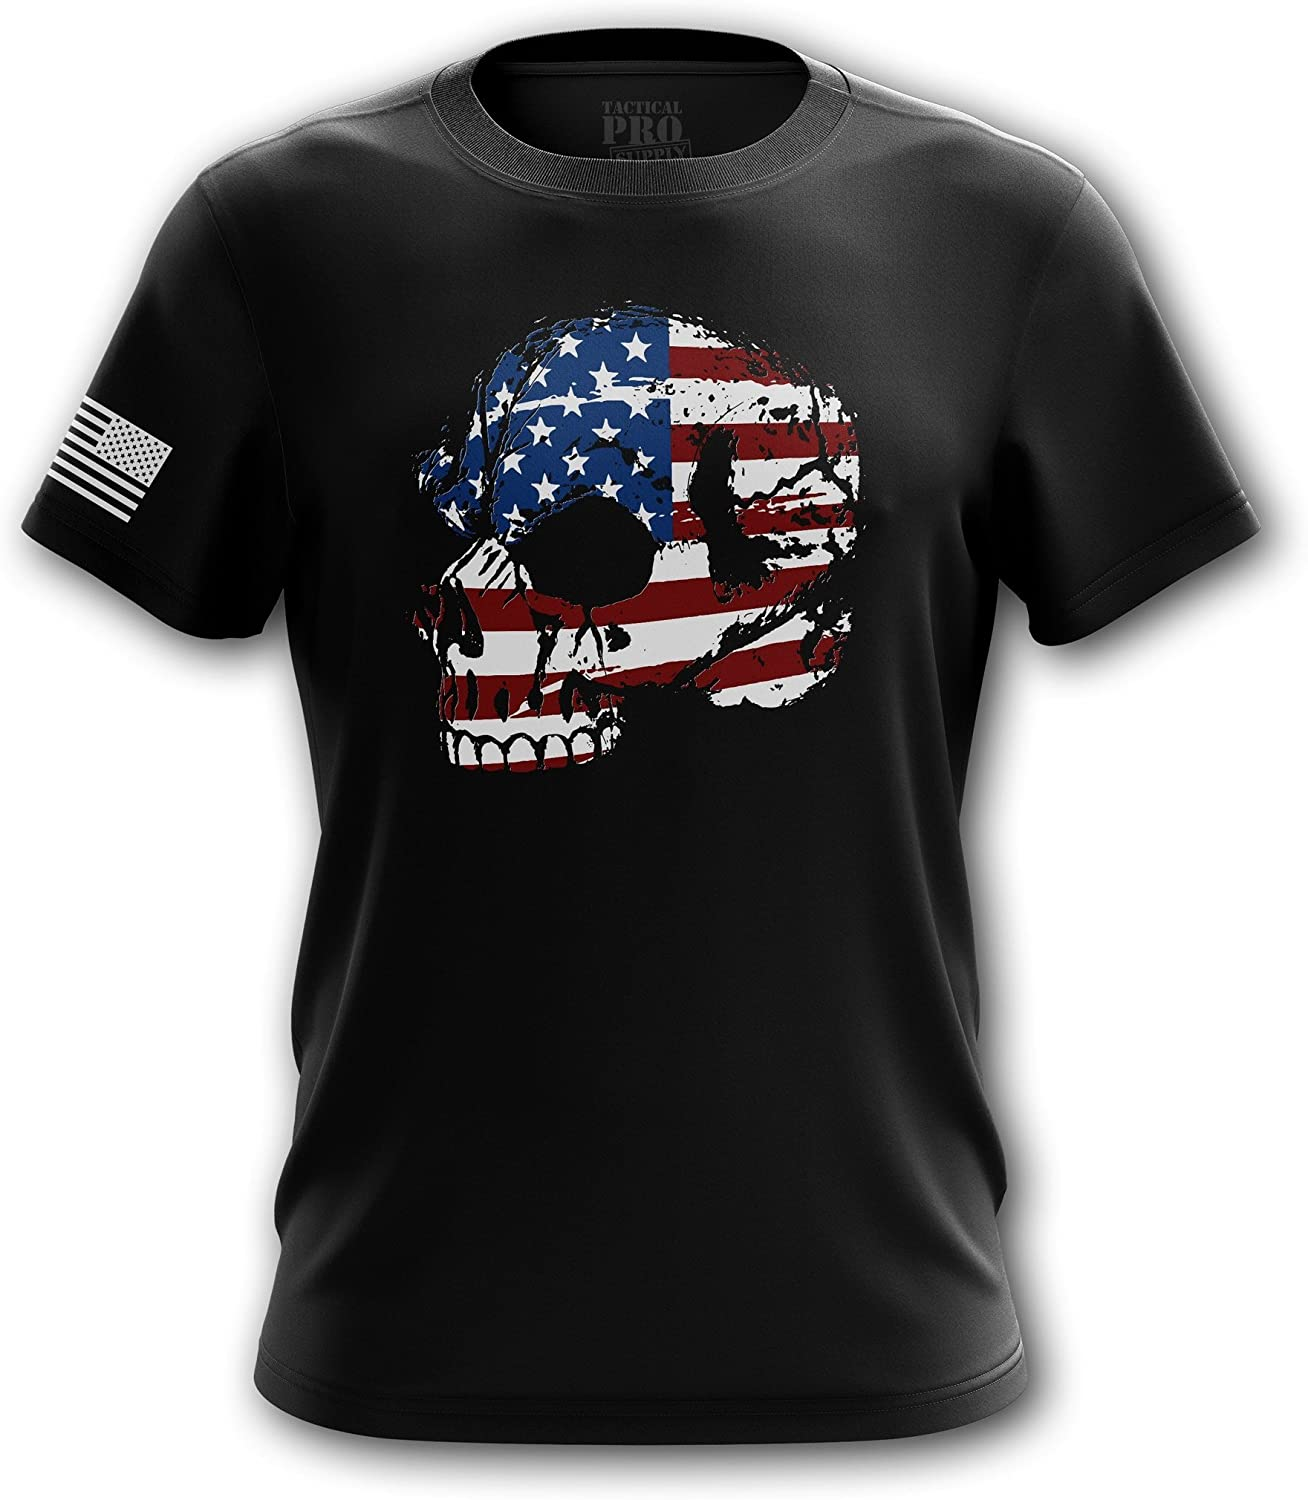 Tactical Pro Supply American Flag Skull T Shirt